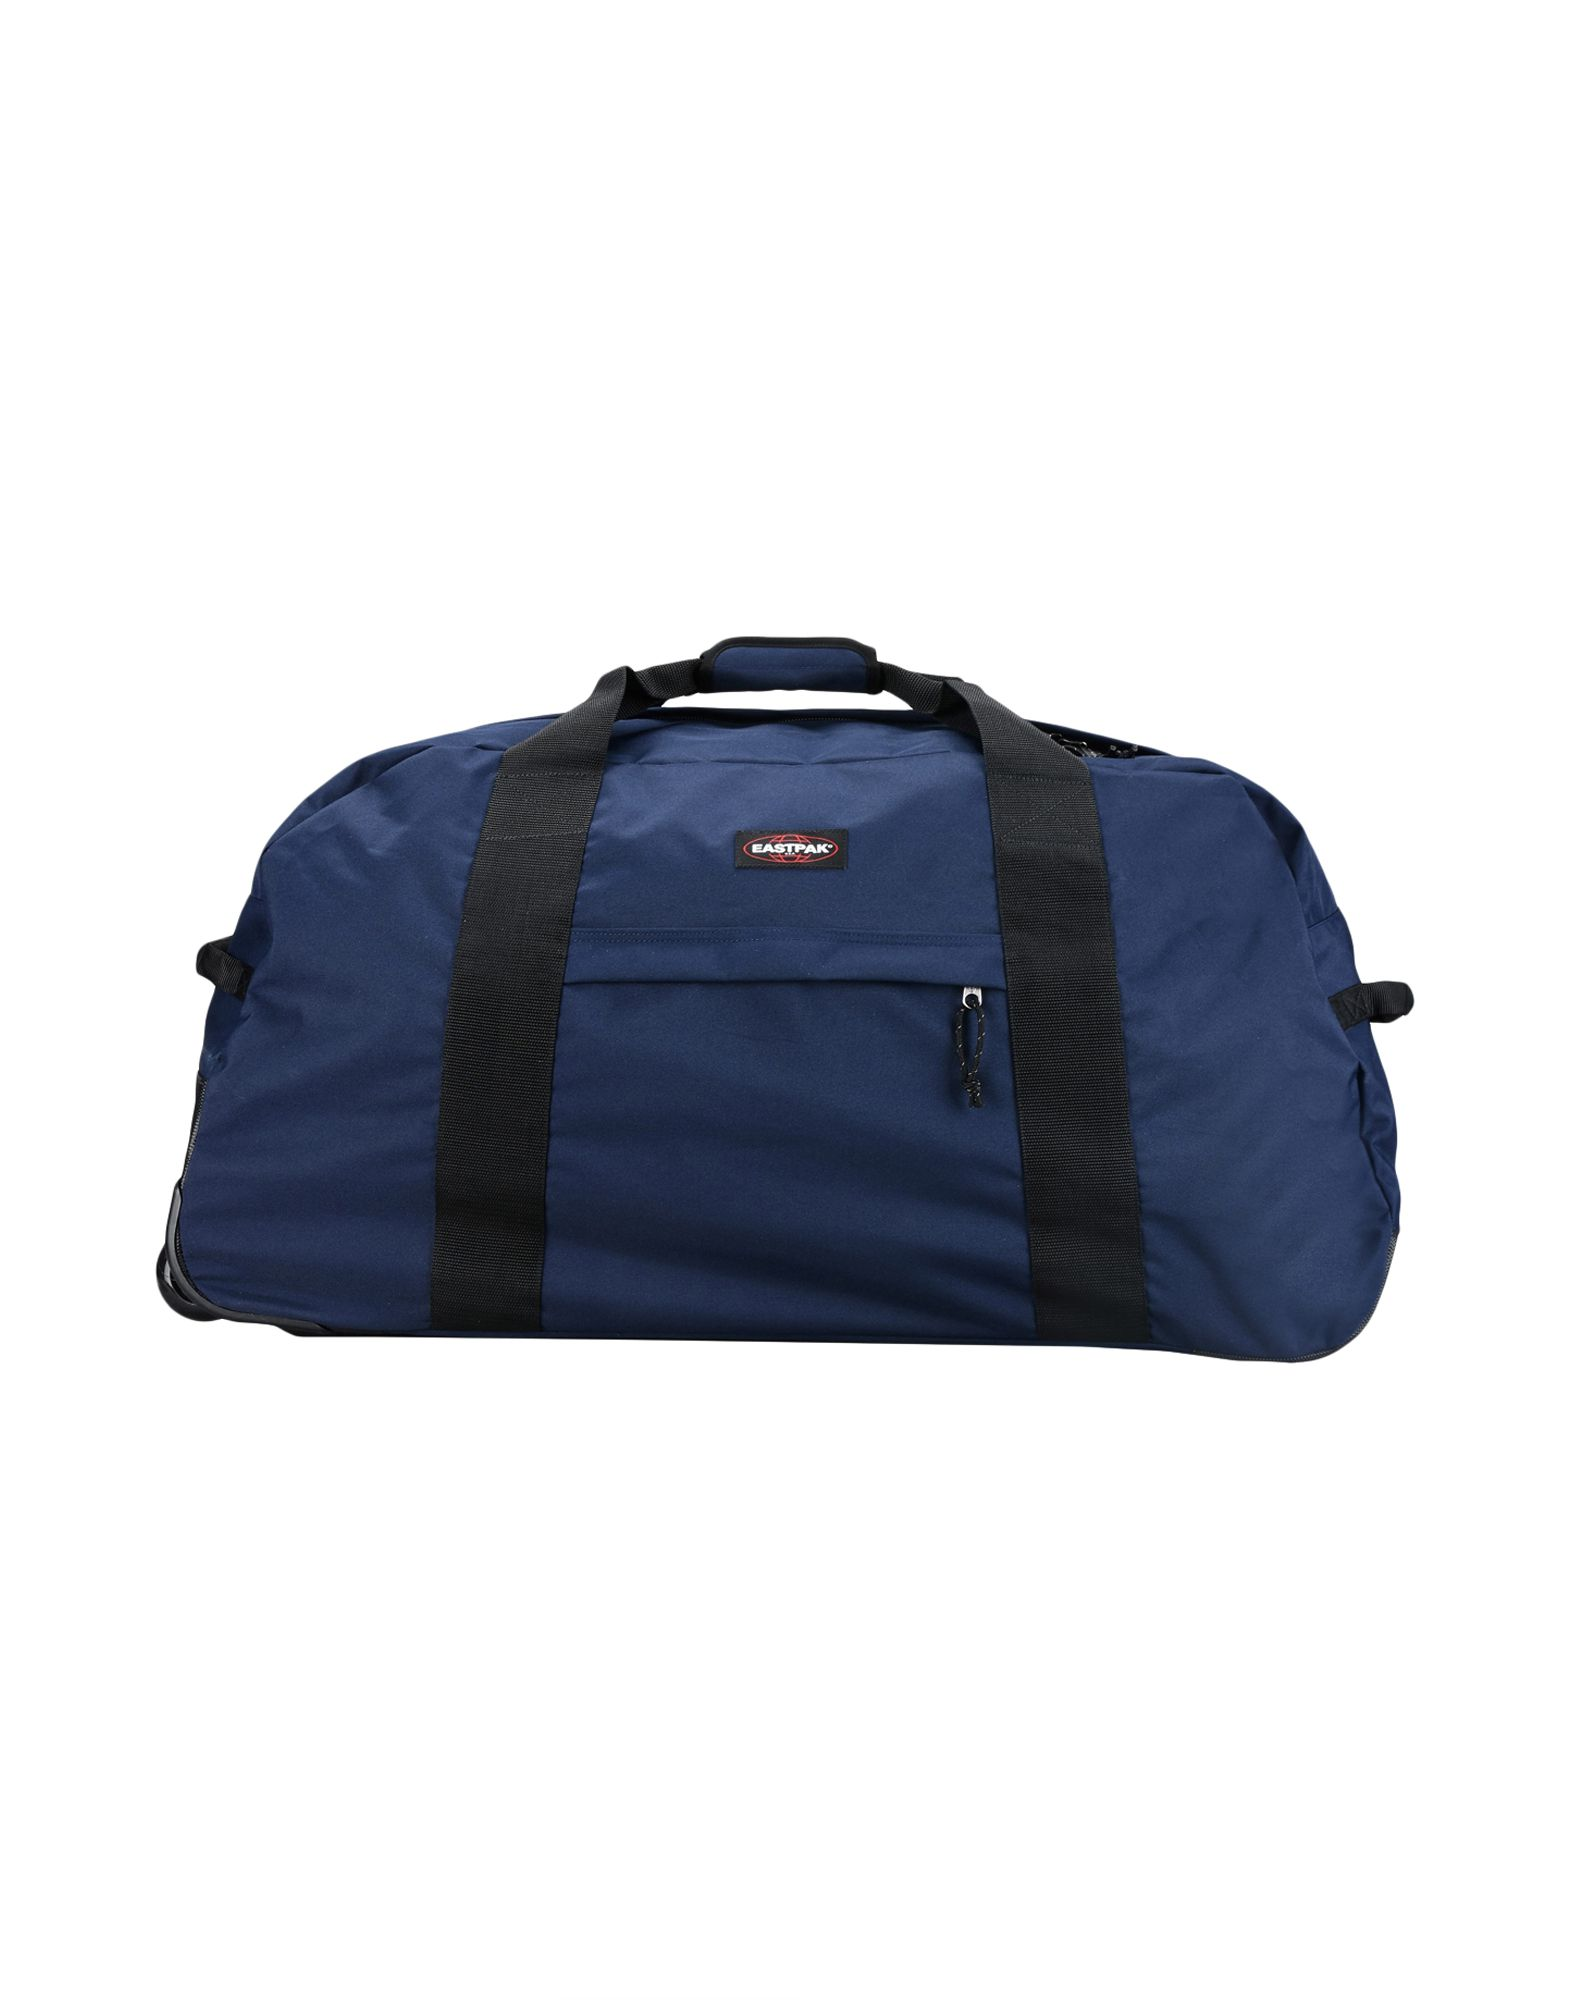 Trolley E Valigie Eastpak Container 85 - Uomo - Acquista online su